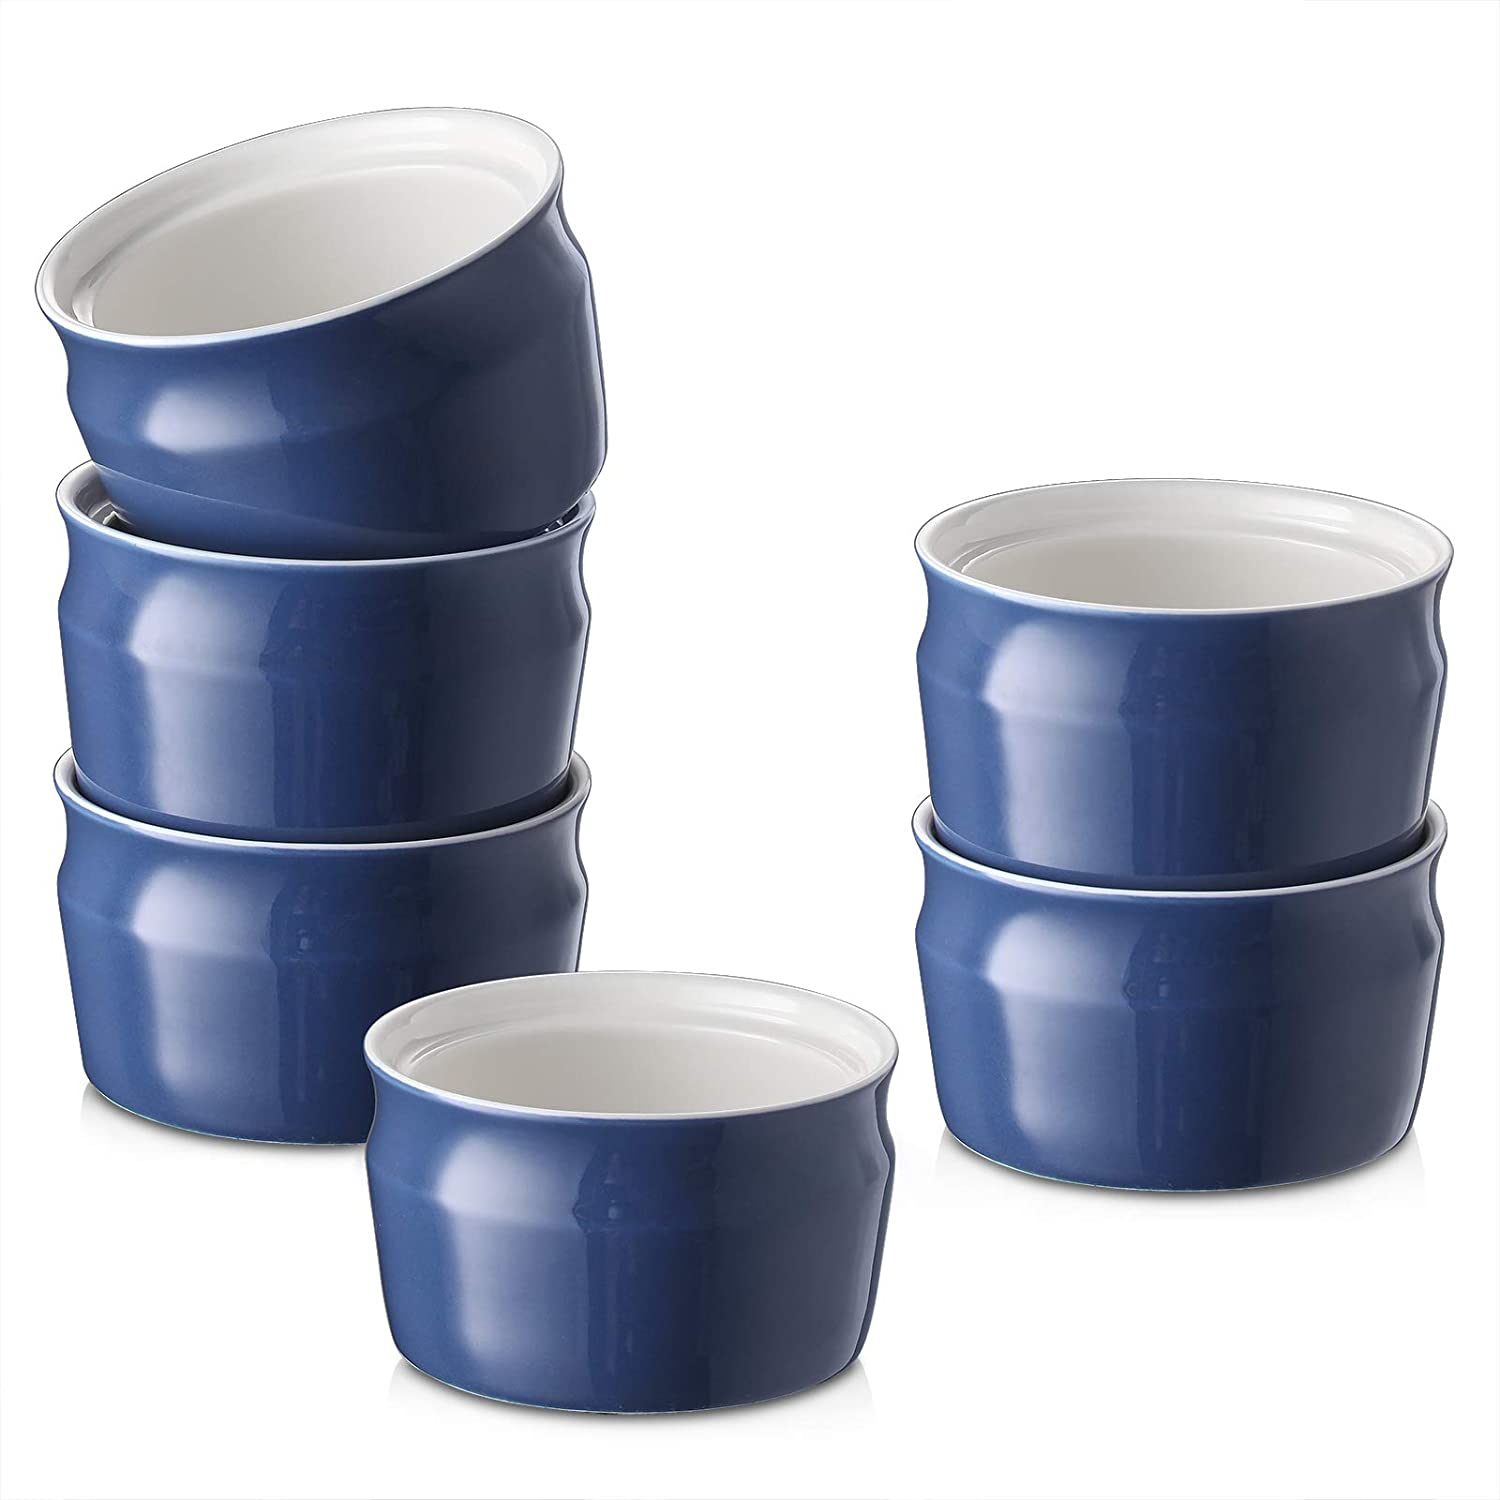 Oven Safe Souffle Ramekins for Creme Brulee Pudding ZONESUM Porcelain Ramekins Bowls 8 Oz Durable /& Versatile Ceramic Ramekins Dishes for Baking Small Dessert Bowls Navy Blue Set of 6